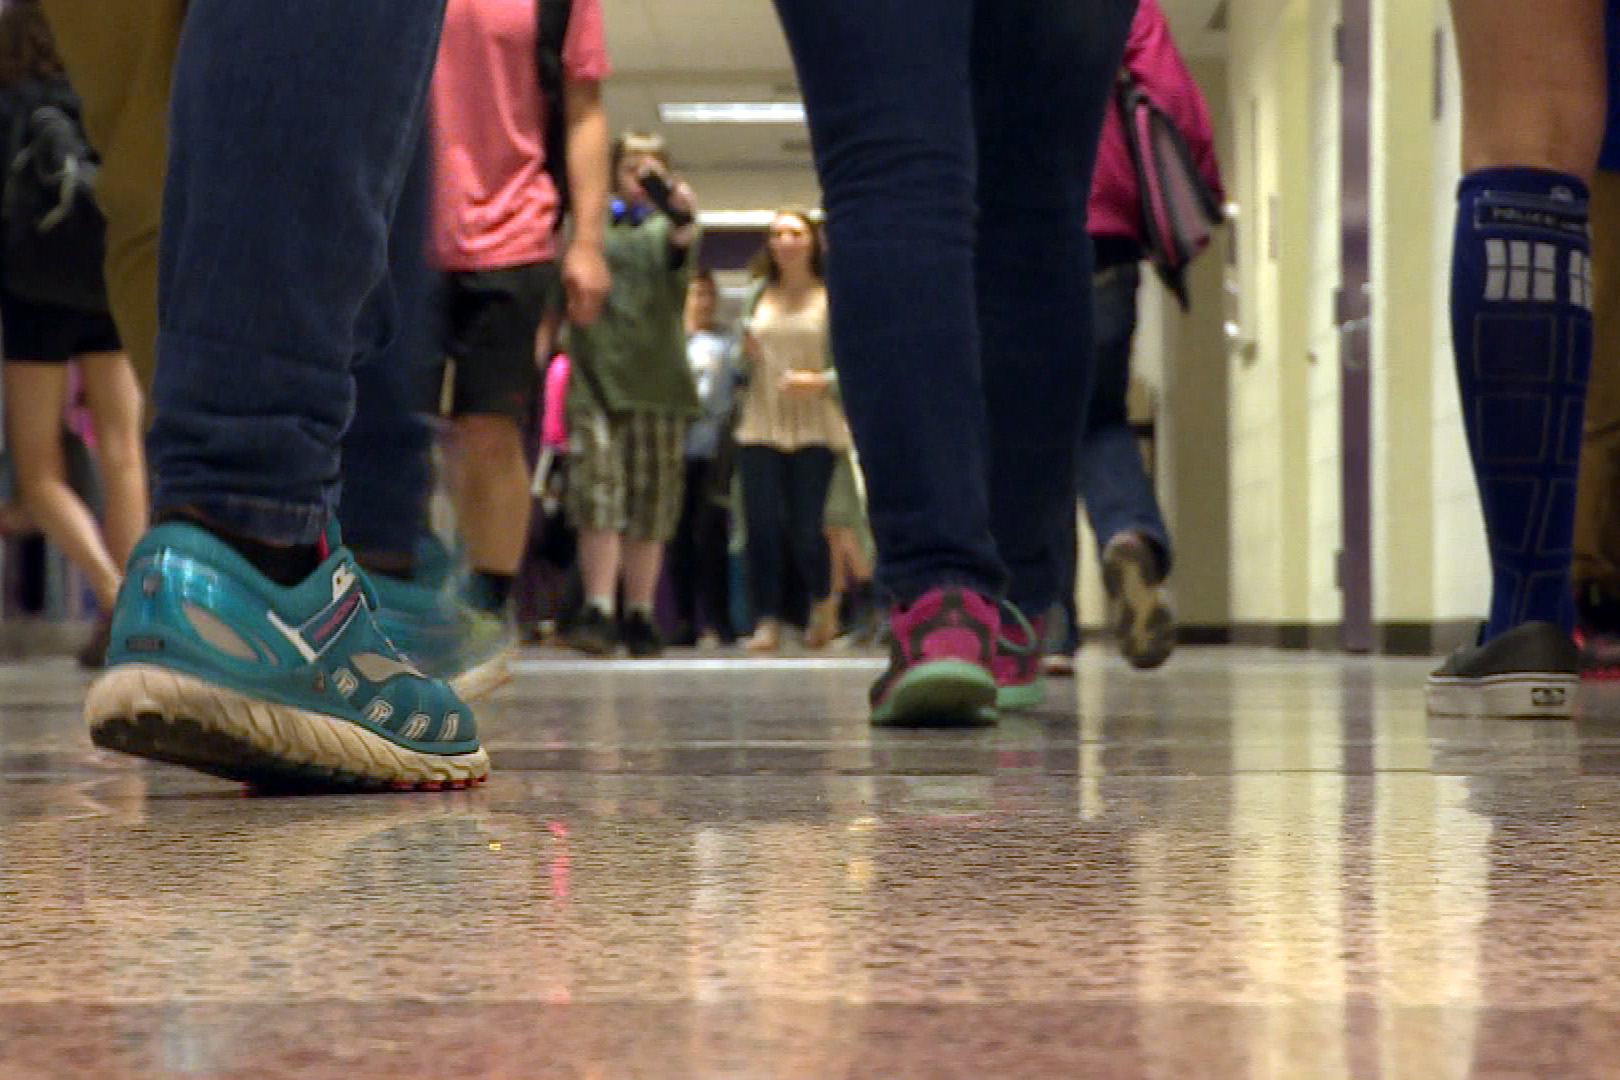 high-school-hallway-feet.jpg